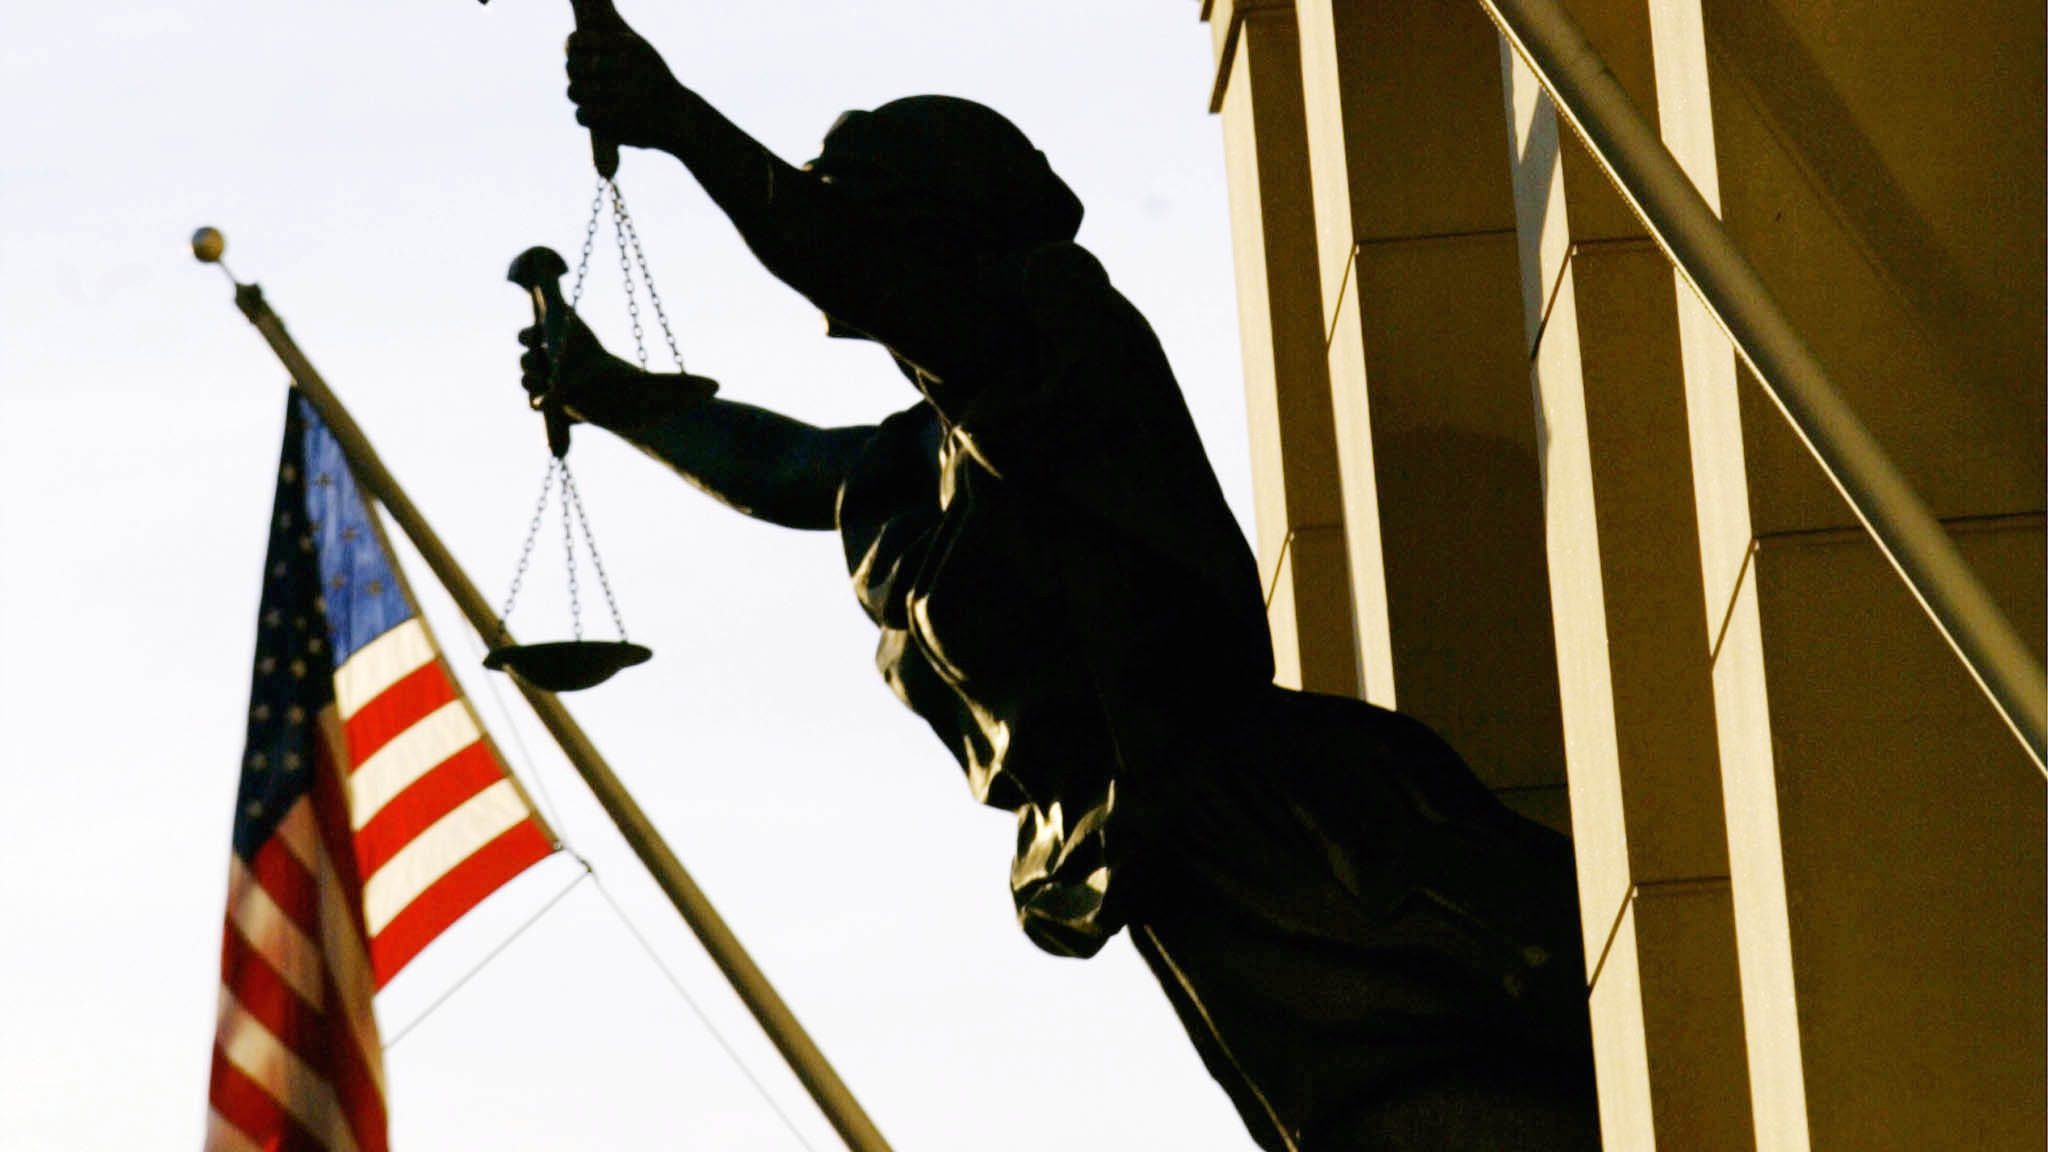 The balancing act that is justice.